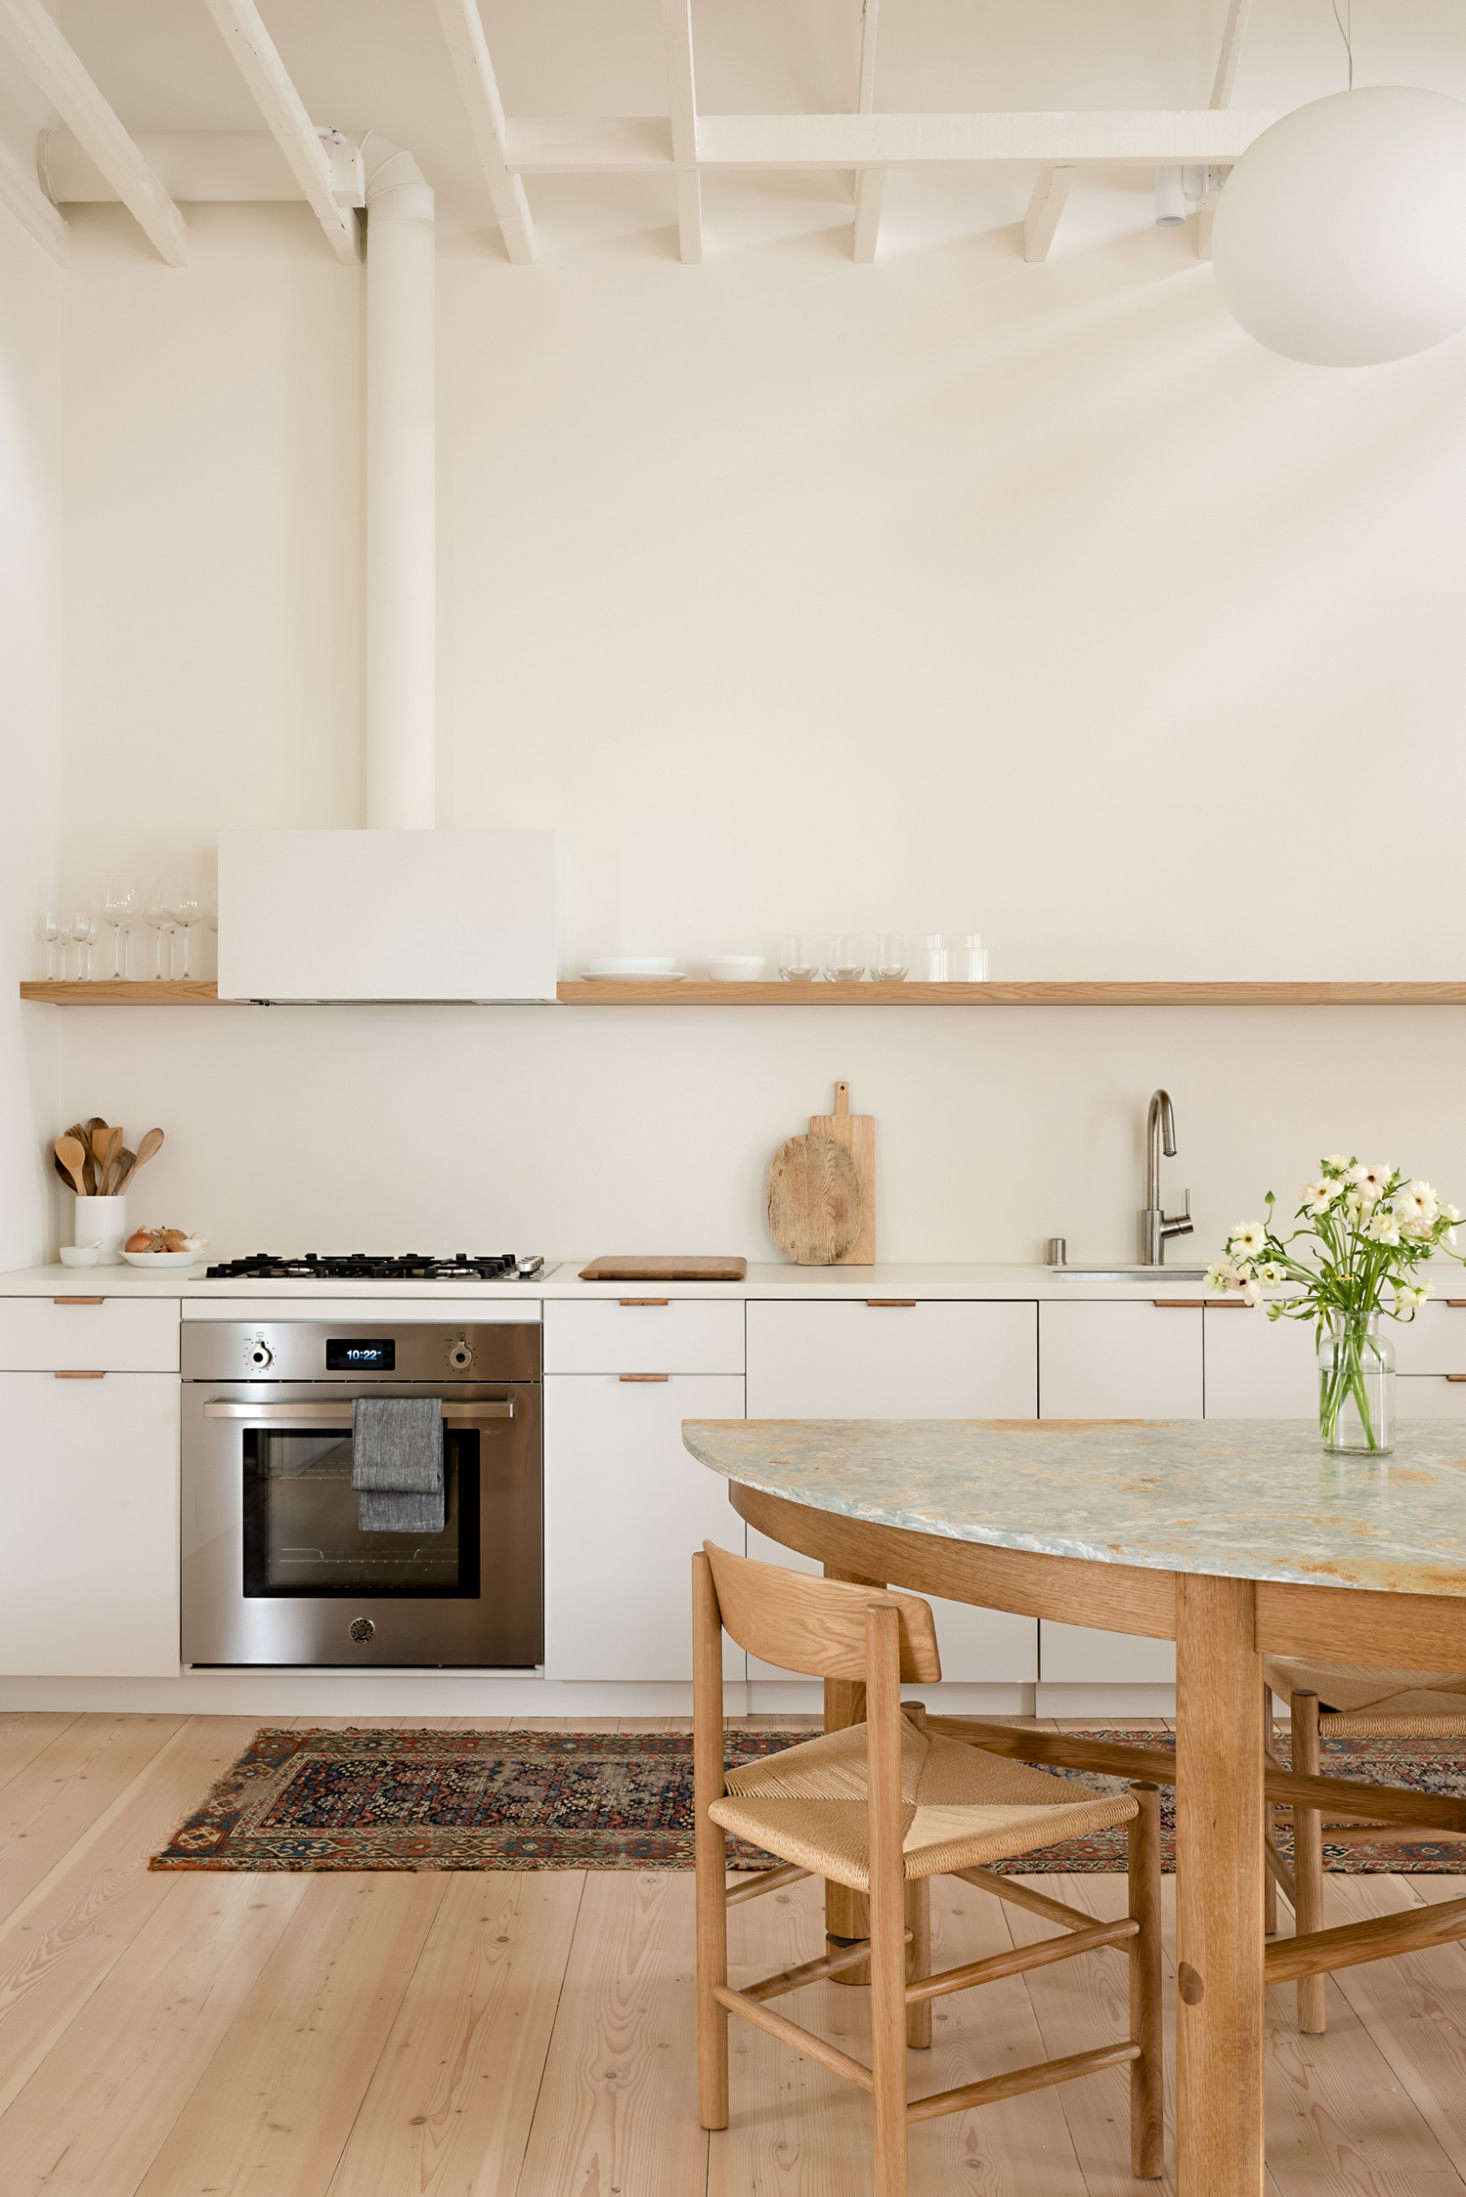 The adjacent kitchen. The white oak dining table and wall storage system were built by the owners' good friend, Anthony Zollo of Studio Zollo. The dining chairs are by Borge Mogensen.